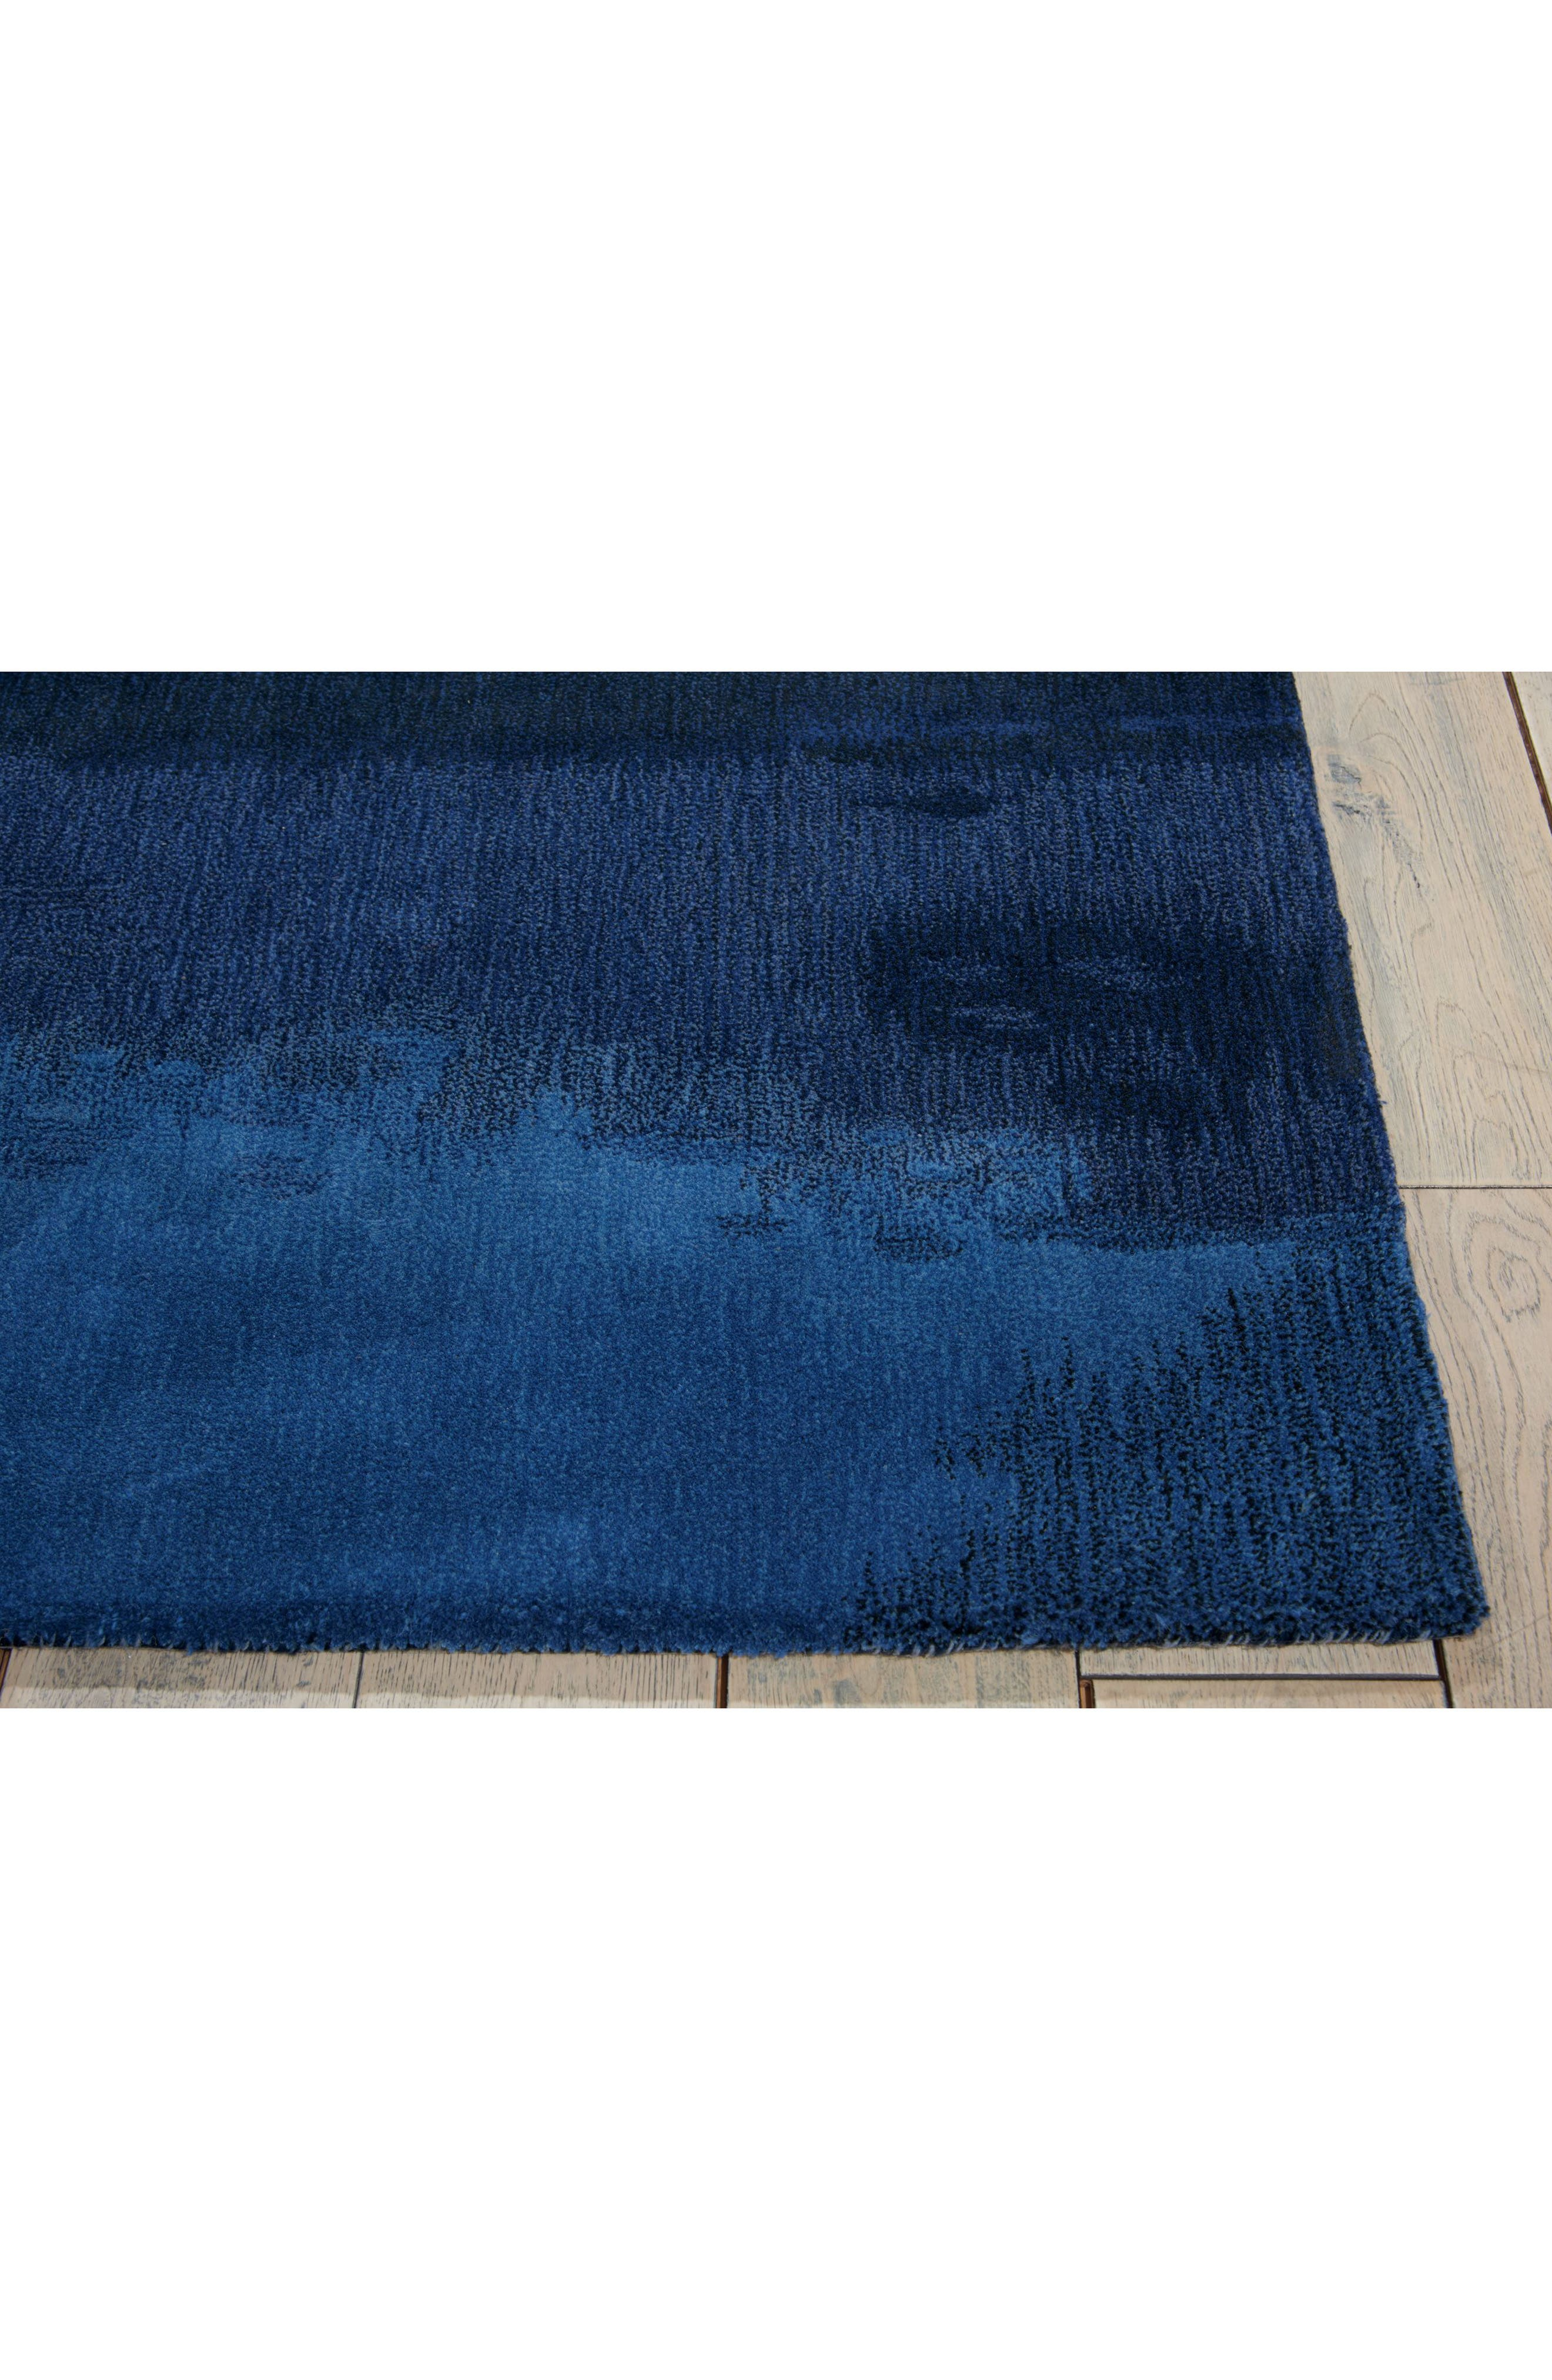 Luster Wash Wool Area Rug,                             Alternate thumbnail 20, color,